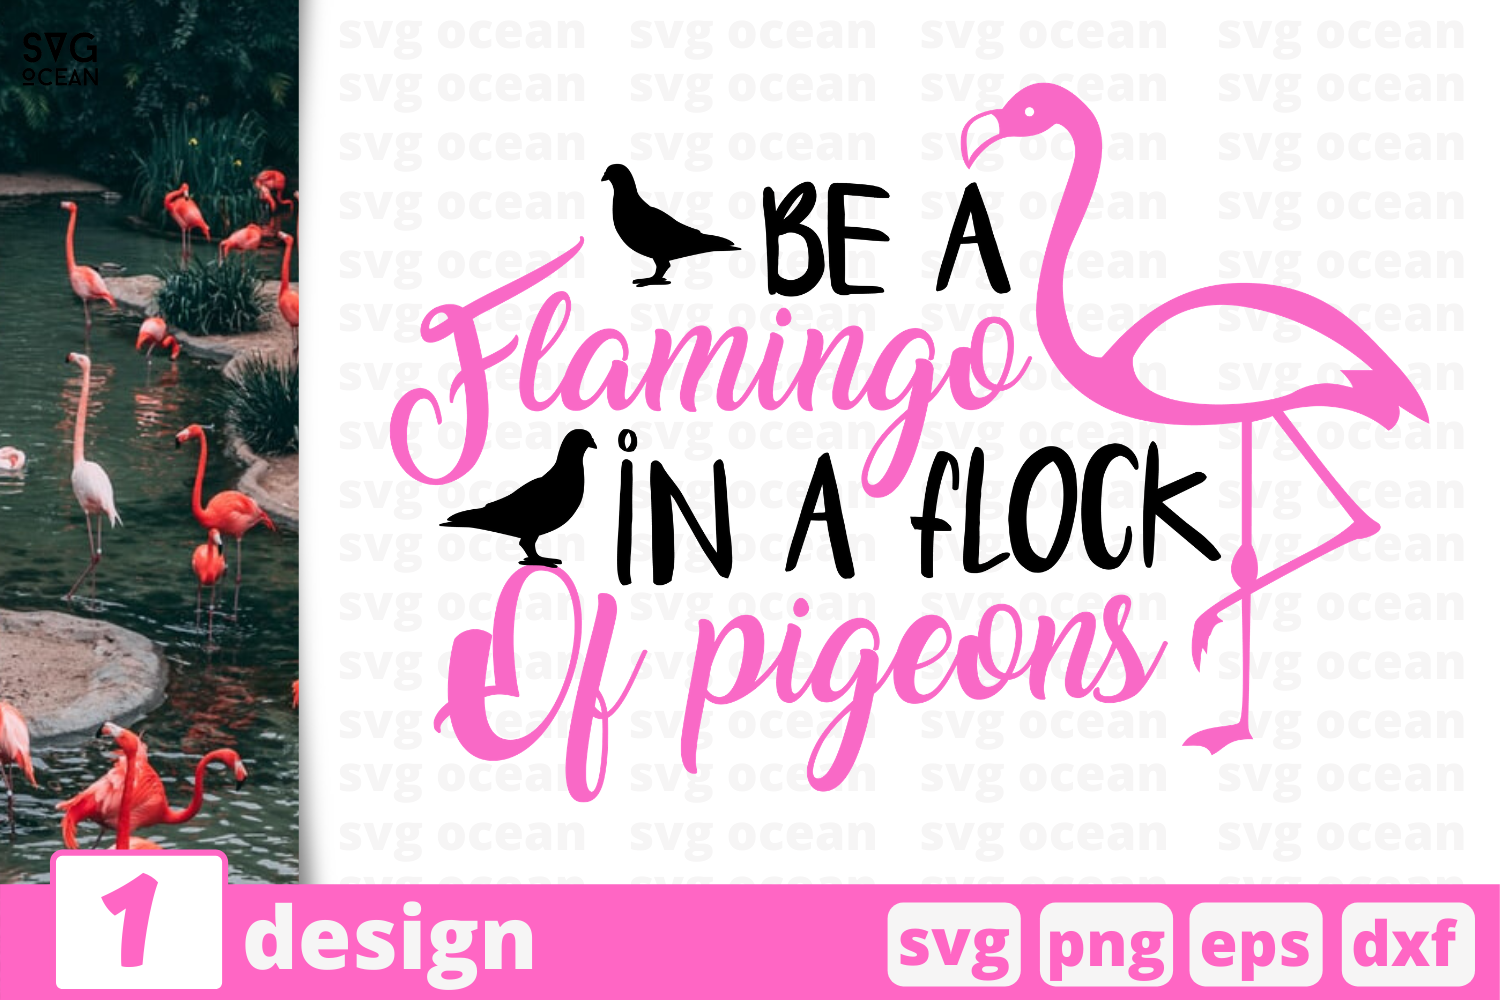 Download Free 1 Be A Flamingo In A Flock Of Pigeons Graphic By Svgocean for Cricut Explore, Silhouette and other cutting machines.